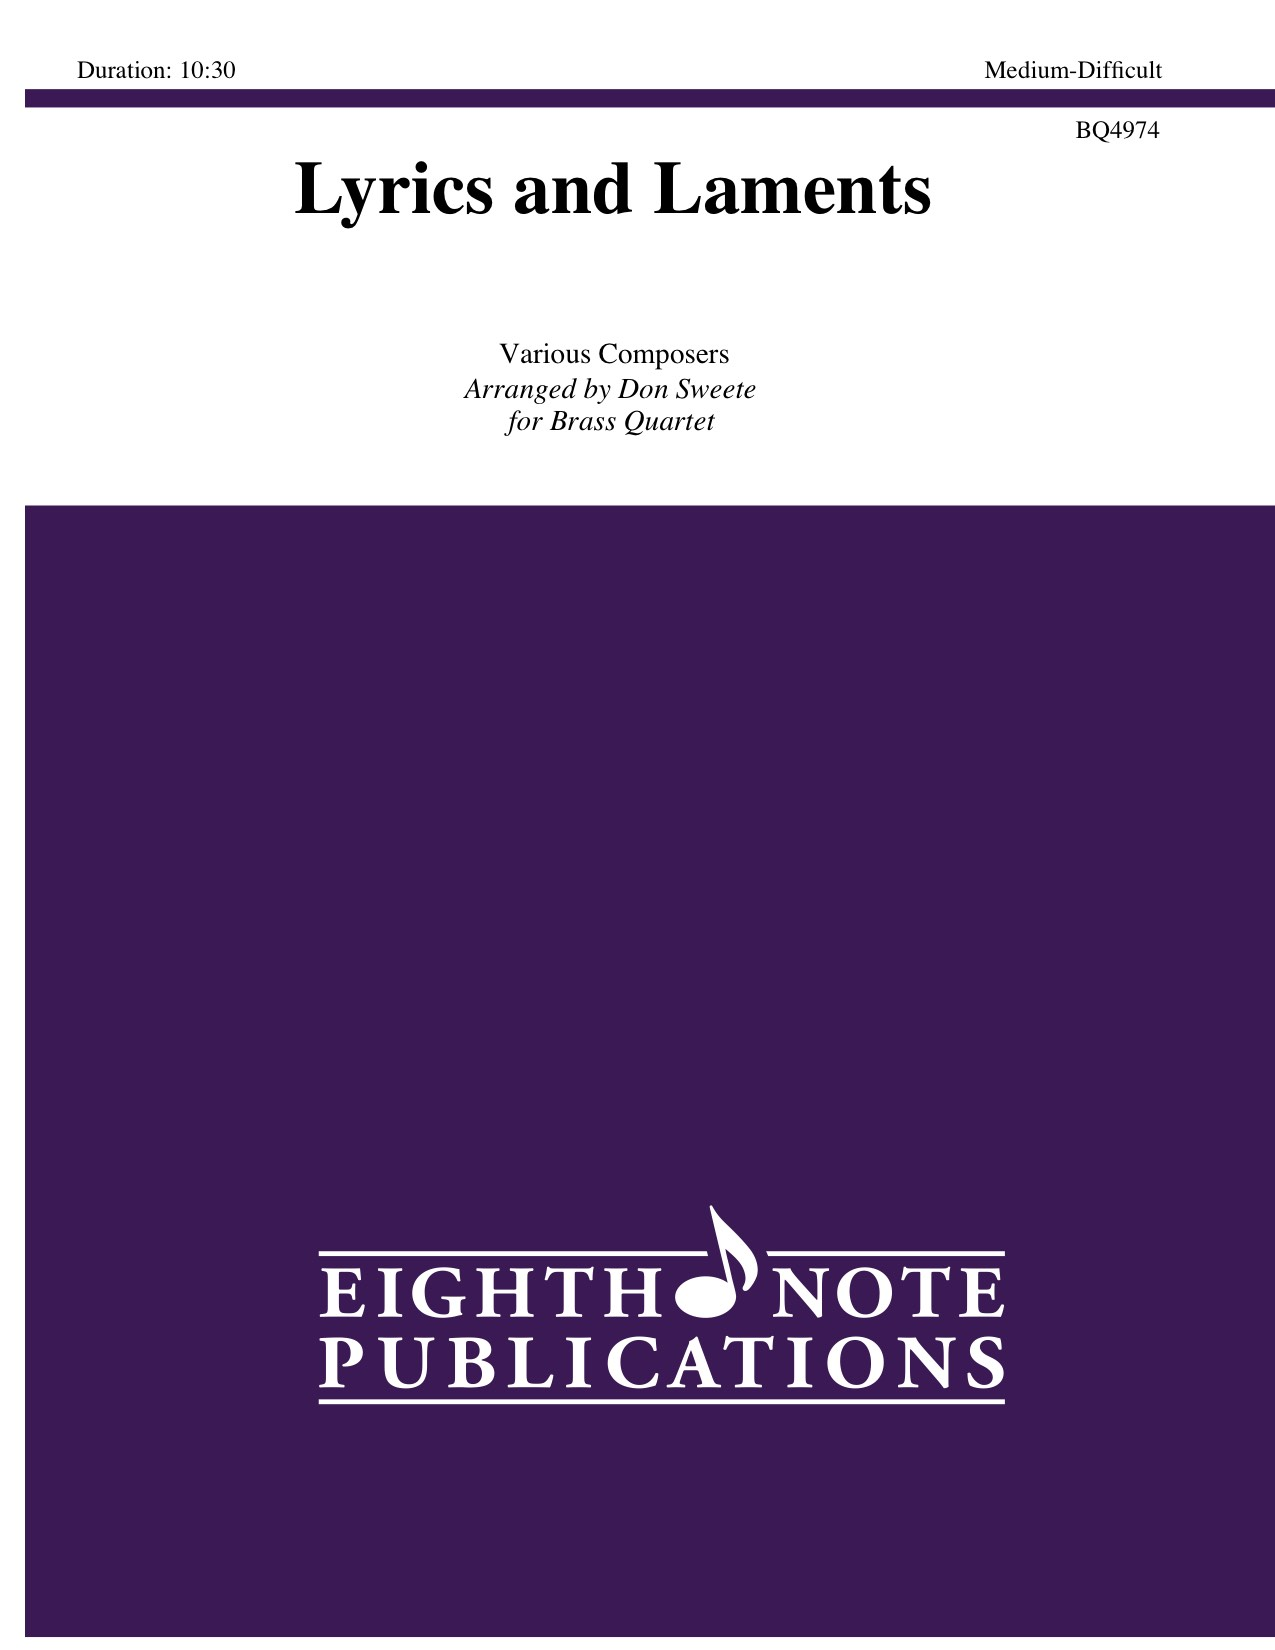 Lyrics and Laments -  Various